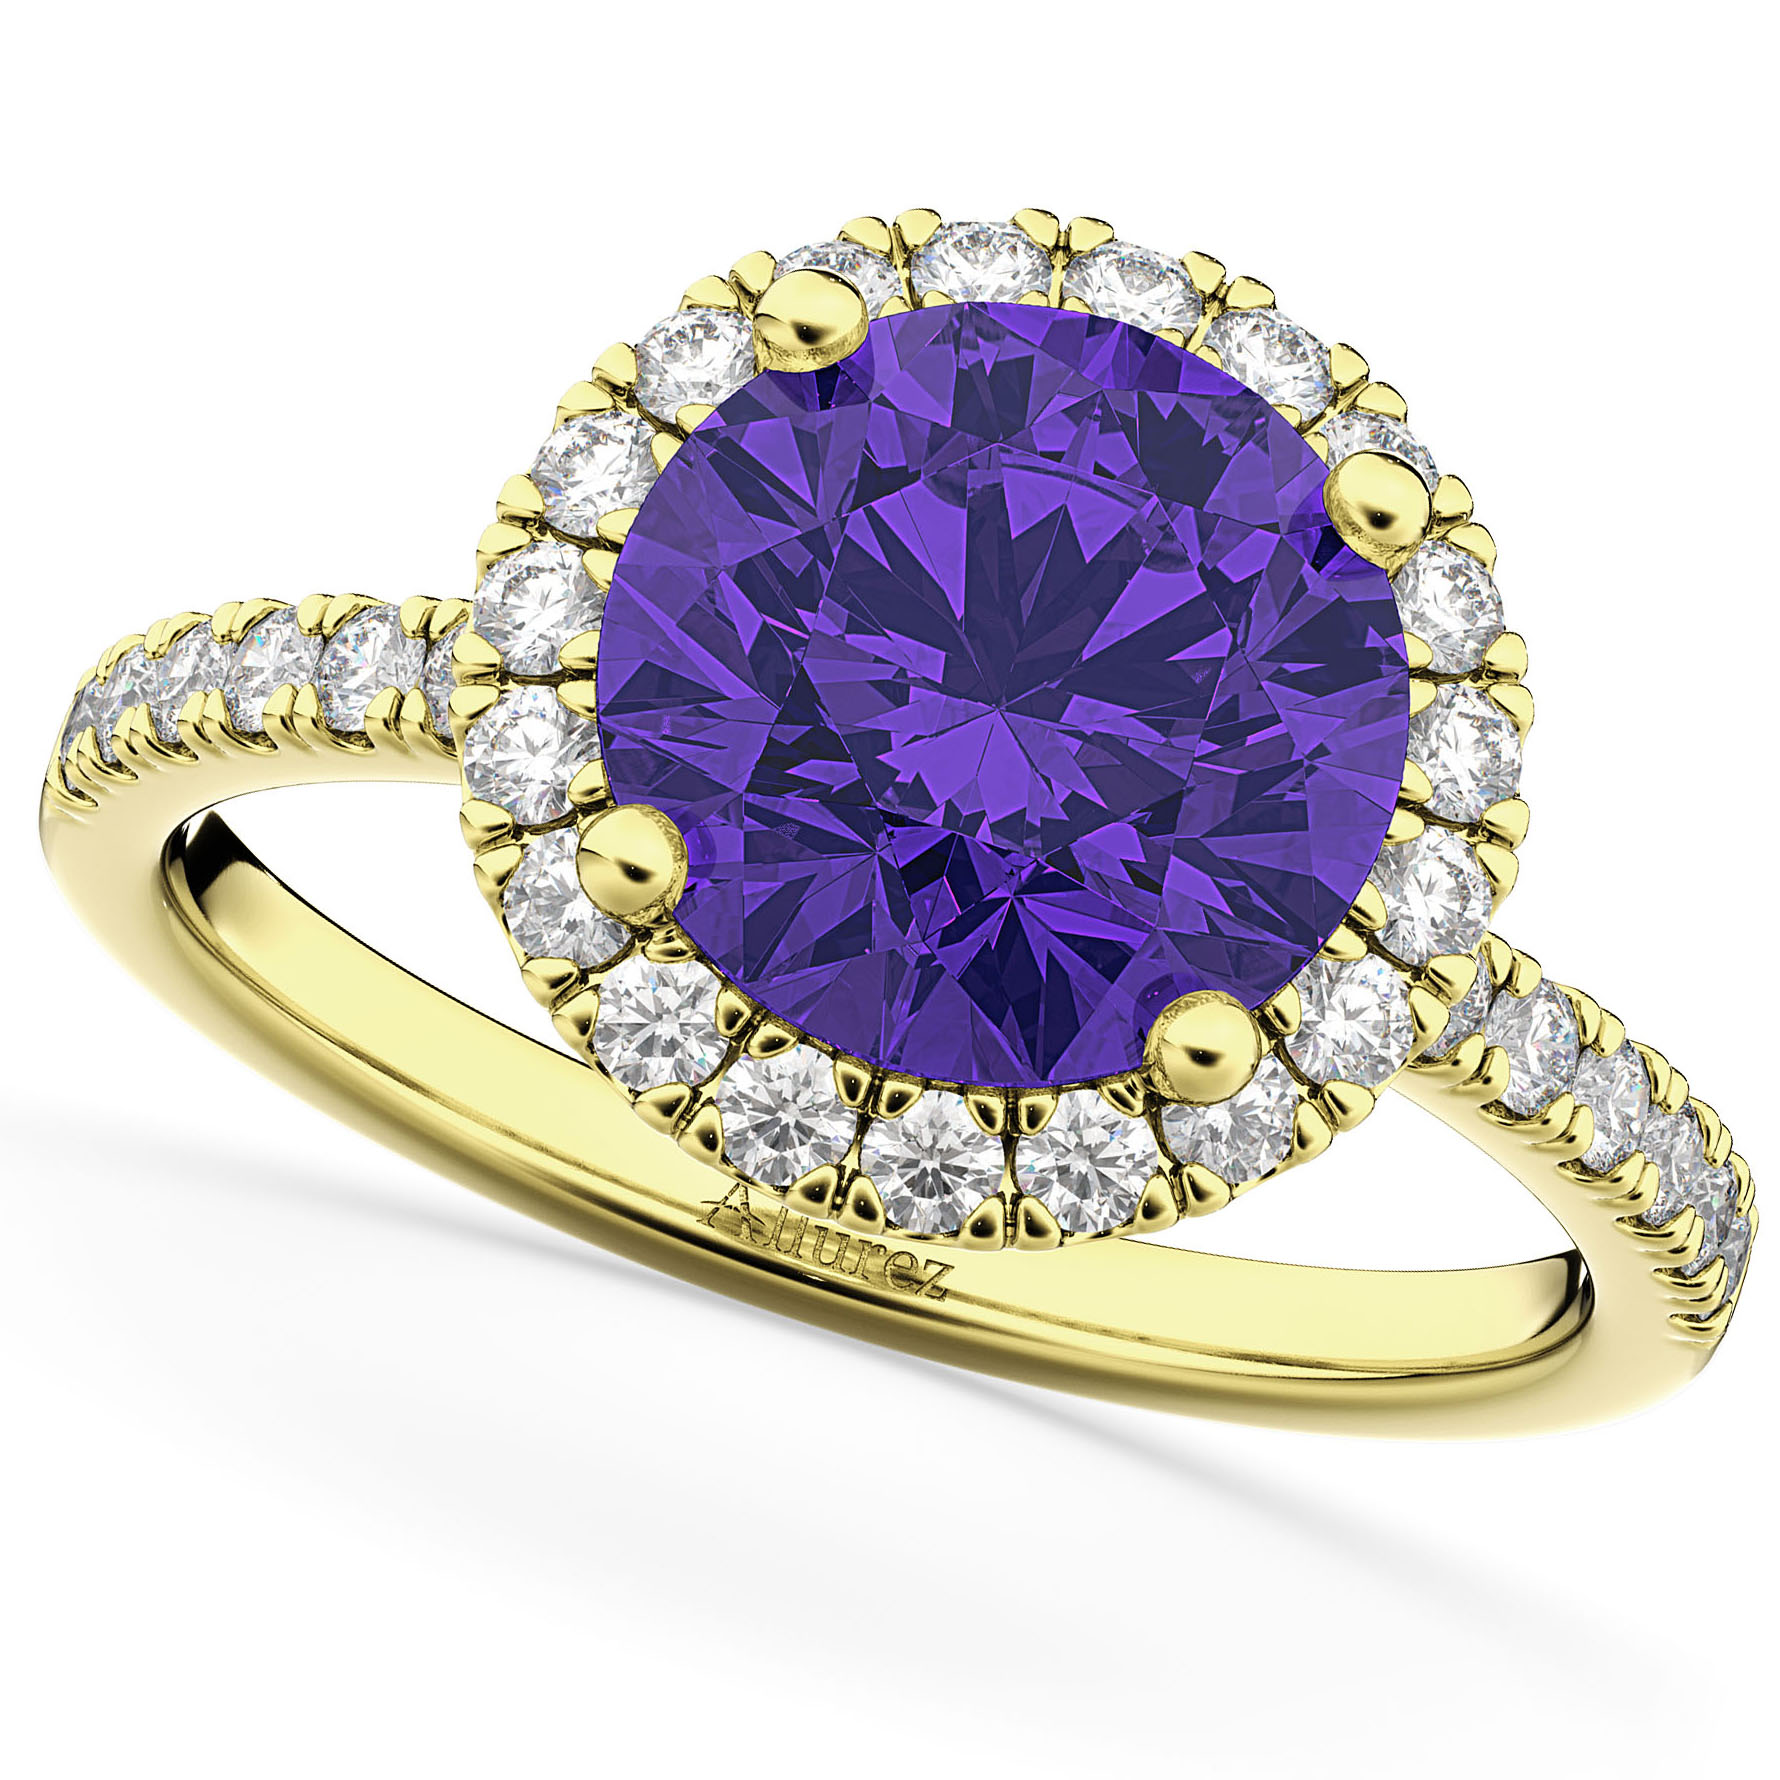 Halo Tanzanite & Diamond Engagement Ring 14K Yellow Gold 2.80ct